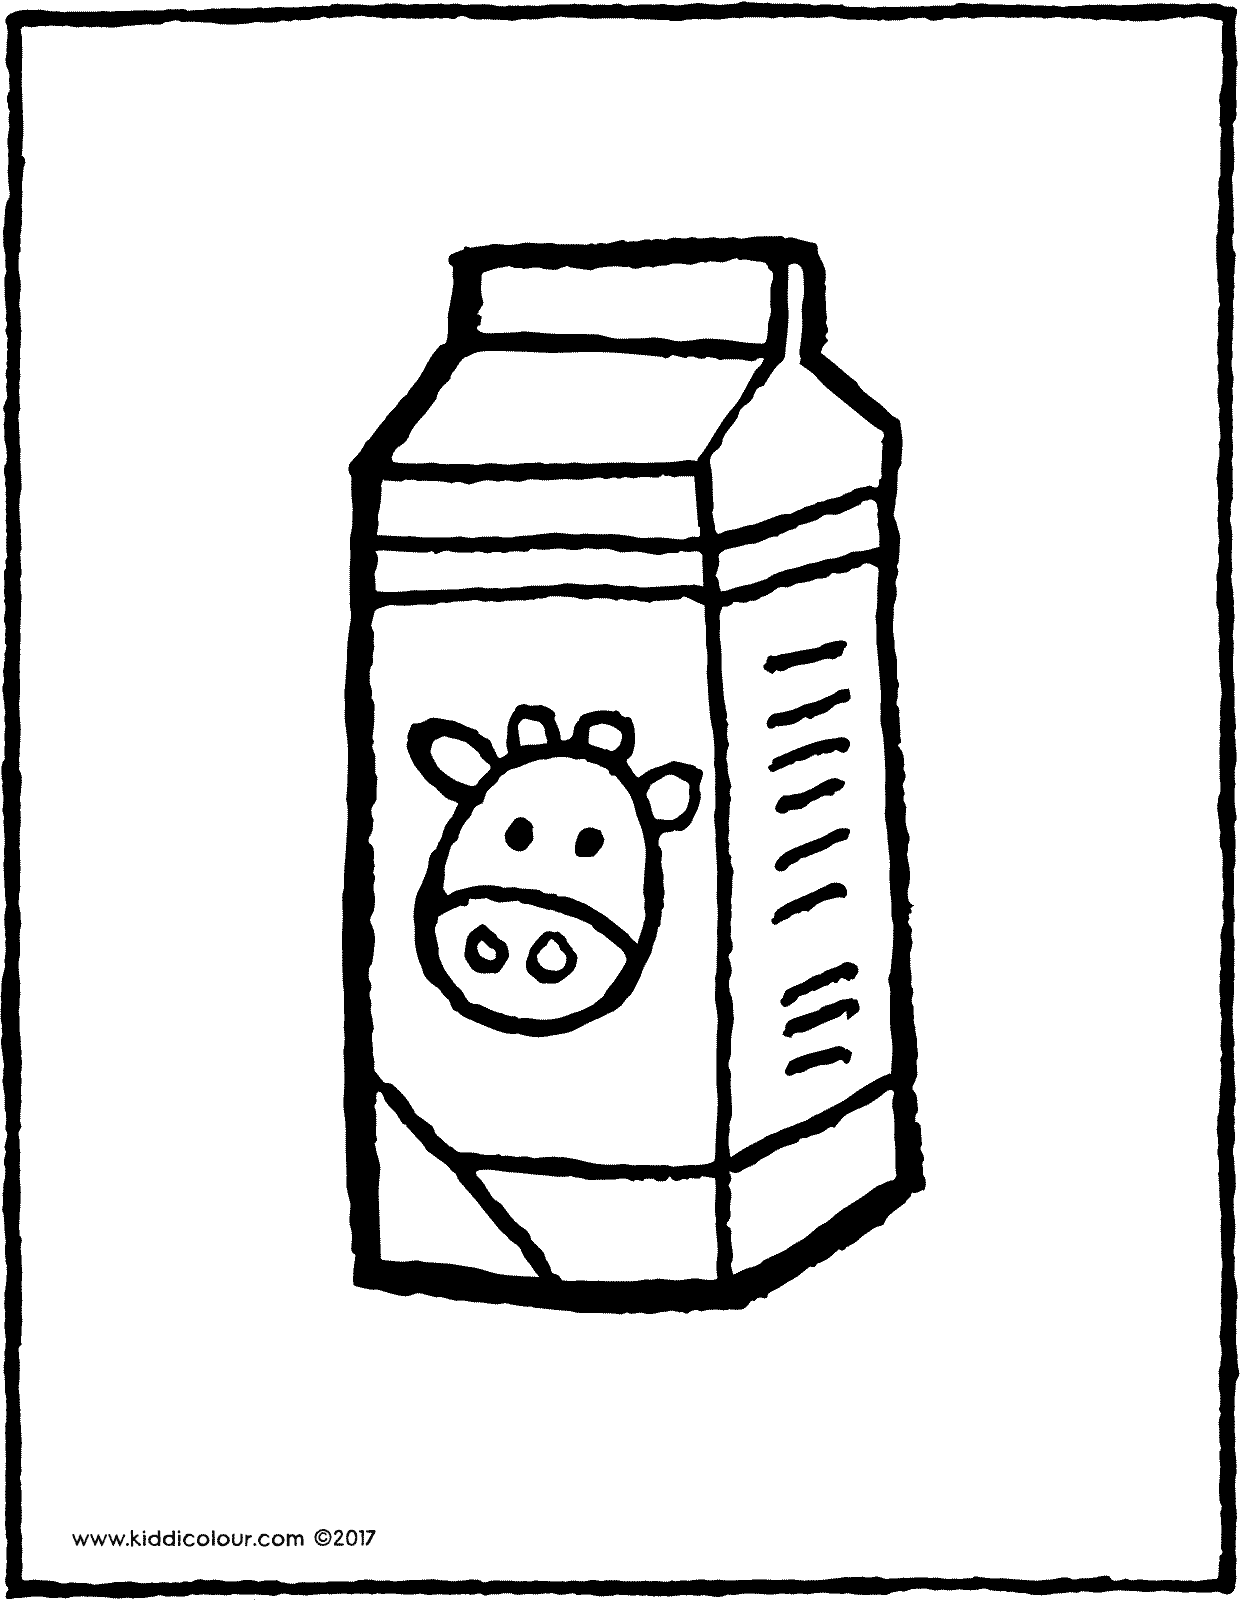 a carton of milk - kiddicolour